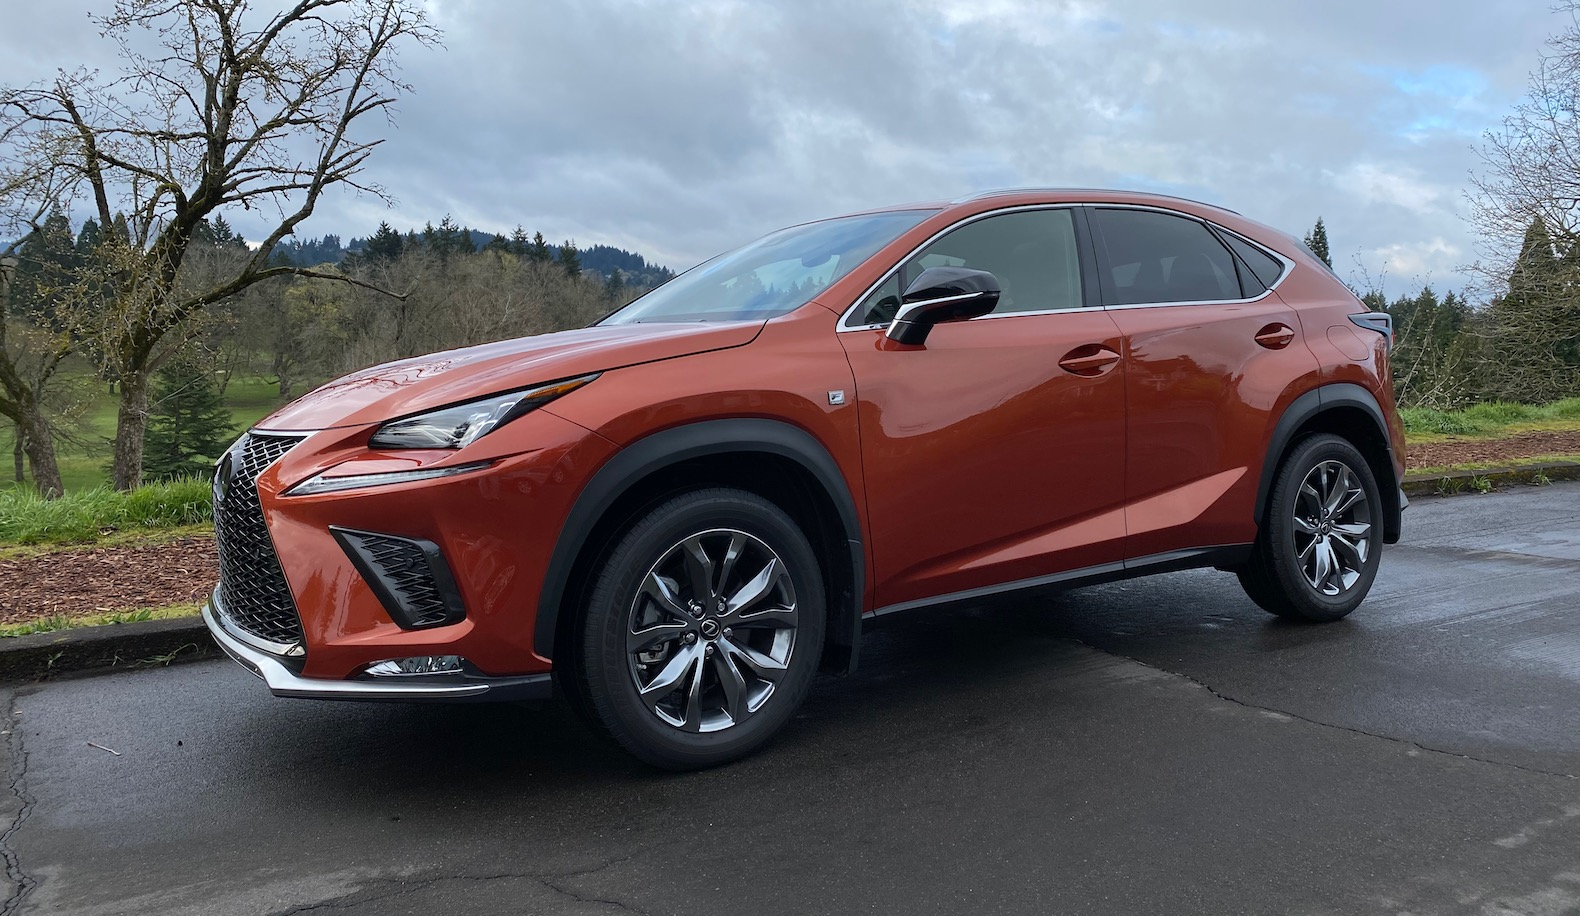 2020 lexus nx review: the avant-garde small suv | the